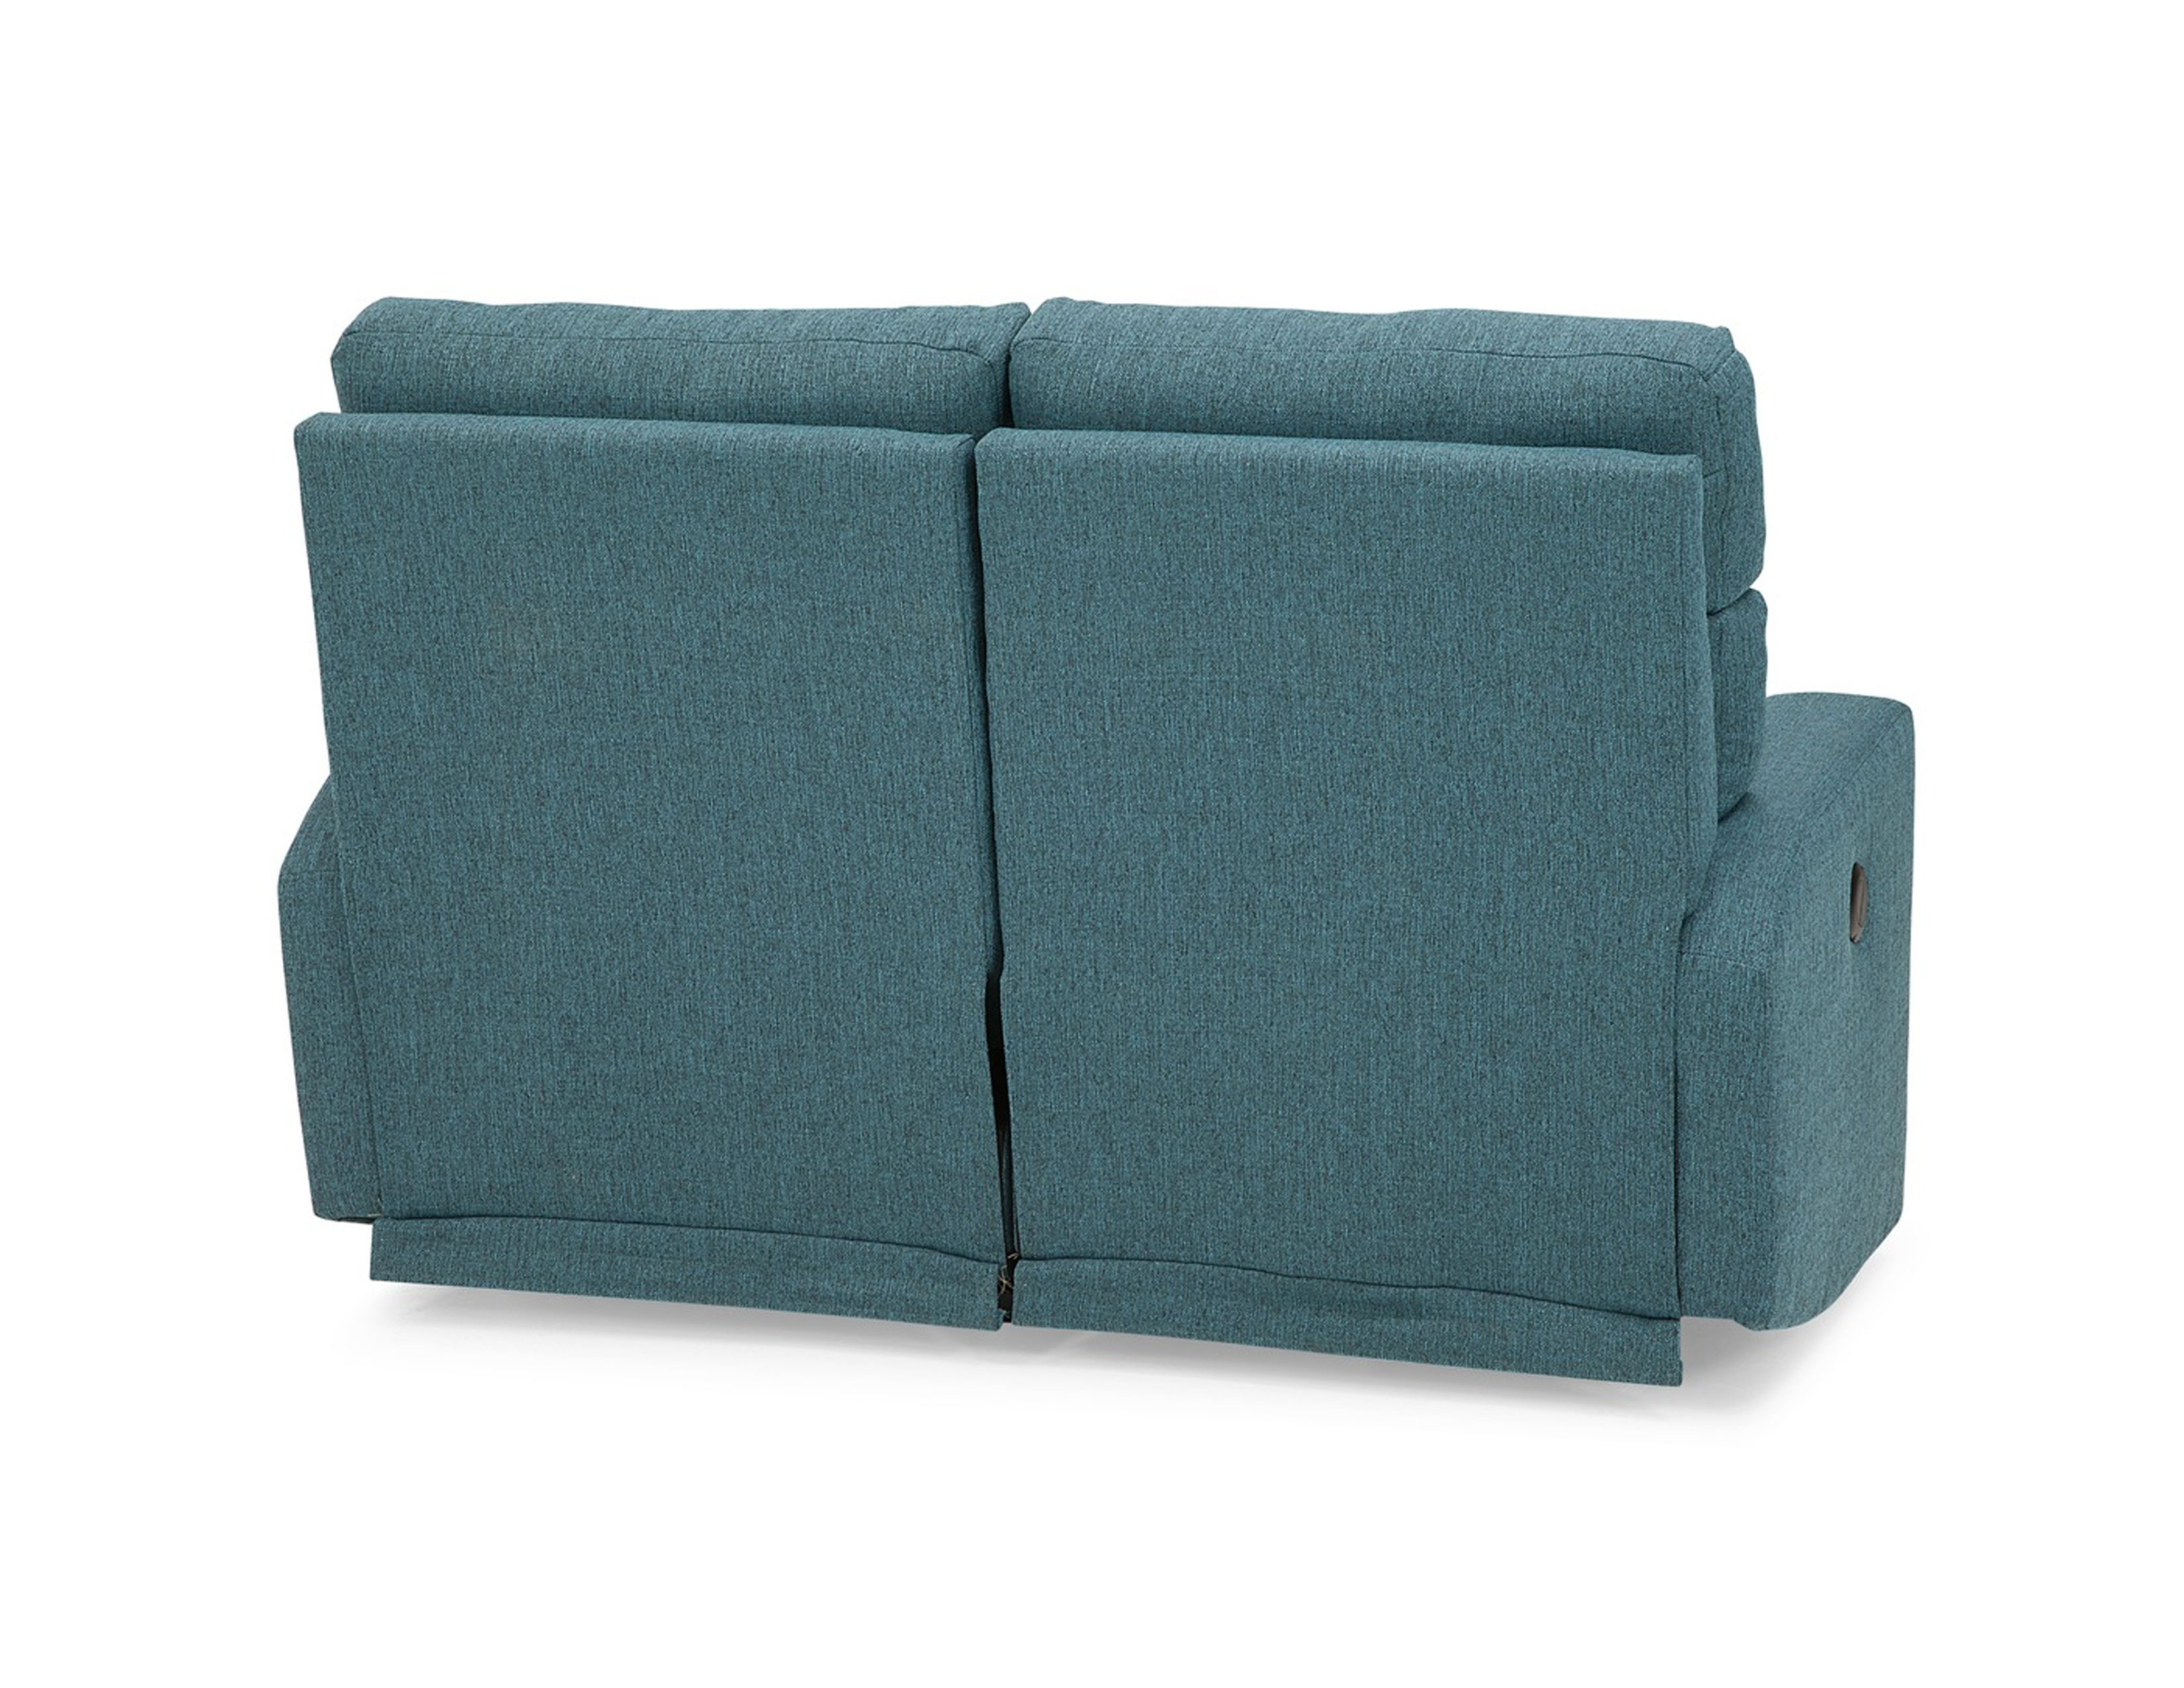 Enjoyable Oakwood Reclining Sofa Collection 350 Fabrics Sofas And Alphanode Cool Chair Designs And Ideas Alphanodeonline